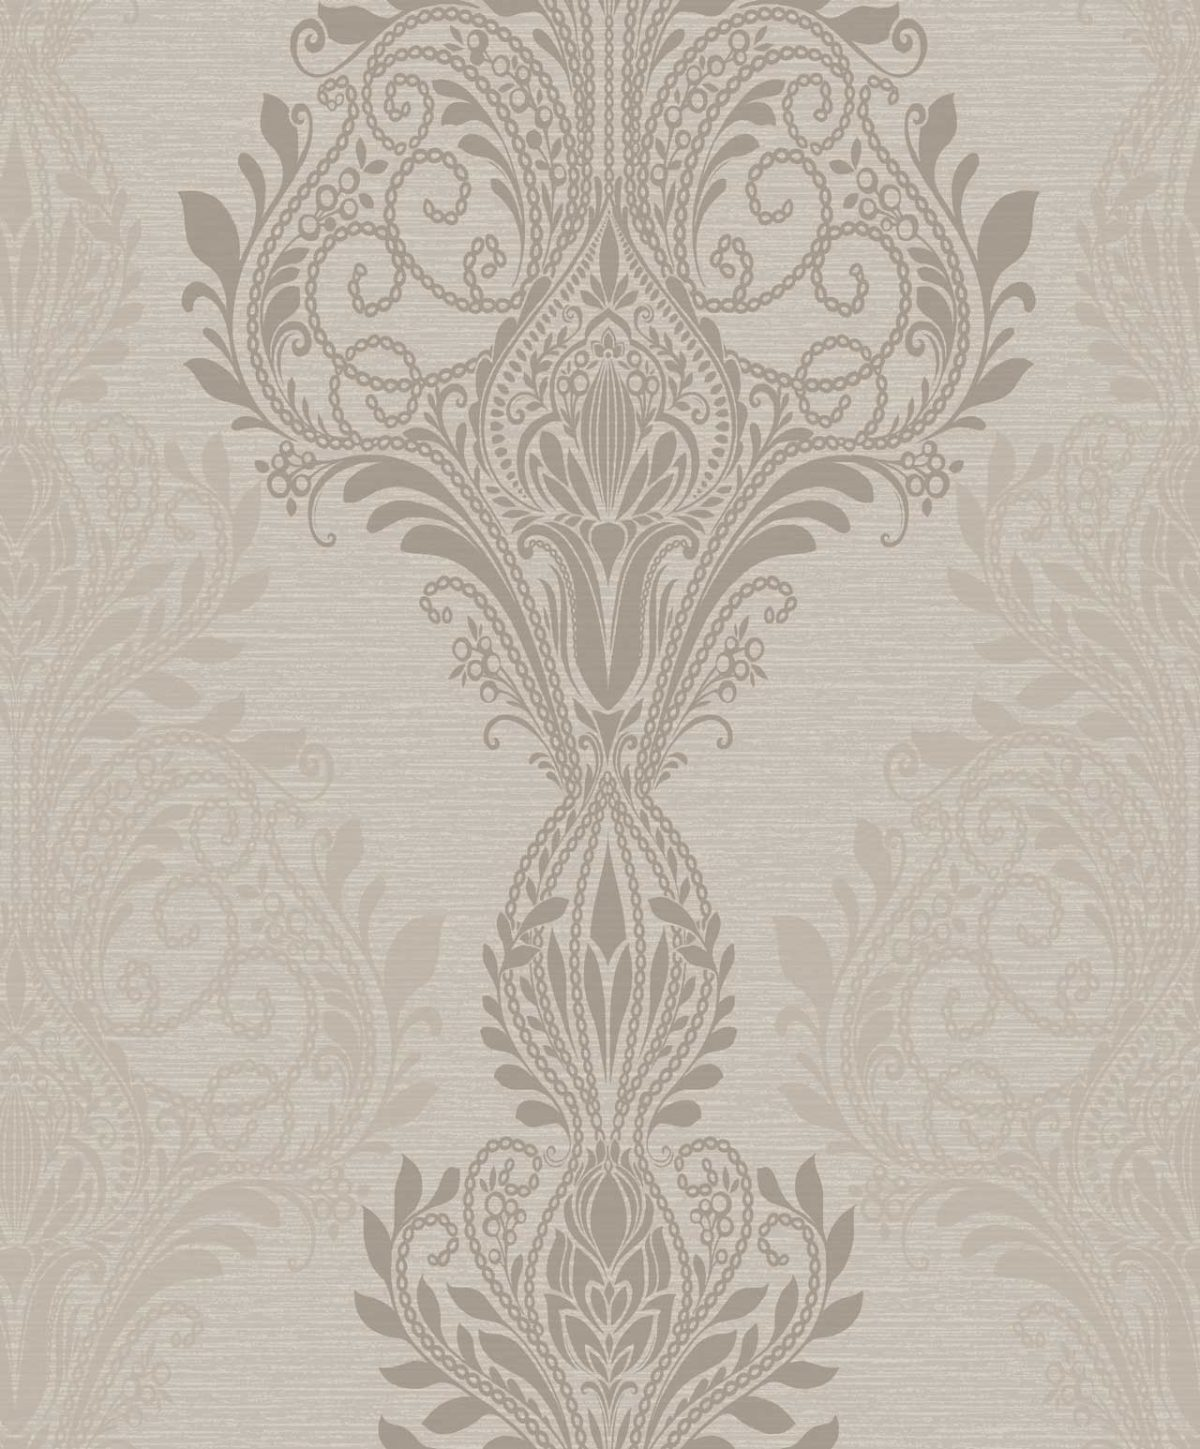 Sloan-Luxury-Wallpaper-SL00806-SLOANE-DAMASK